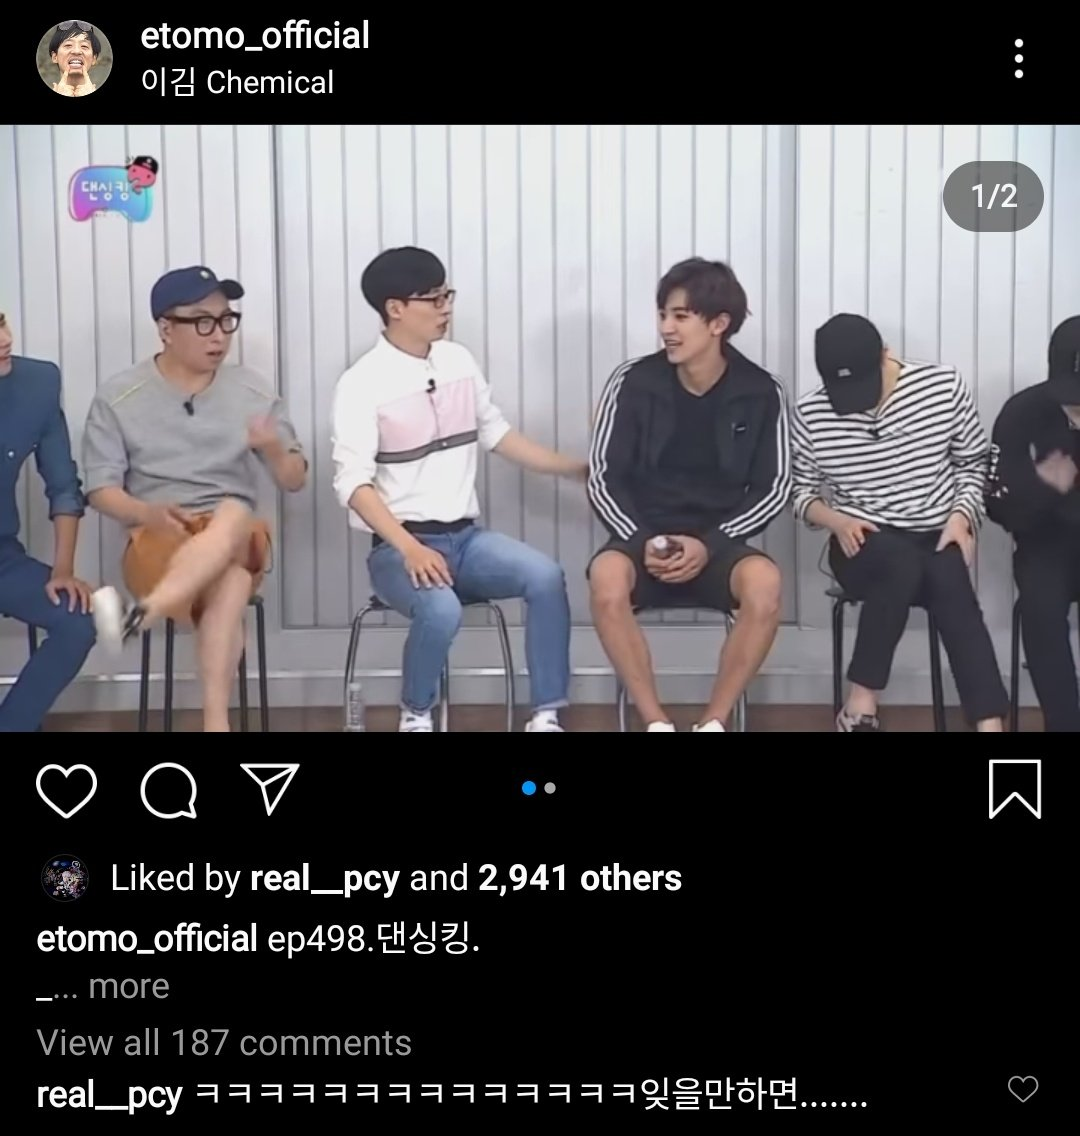 """real__pcy comment: """"ㅋㅋㅋㅋㅋwhen I try to forget (someone brings it up again).......""""  Chanyeol liked and commented on his legendary krump video😭  #CHANYEOL #찬열 #CHANYEOL_Nothin https://t.co/sLmRA5DnF7"""